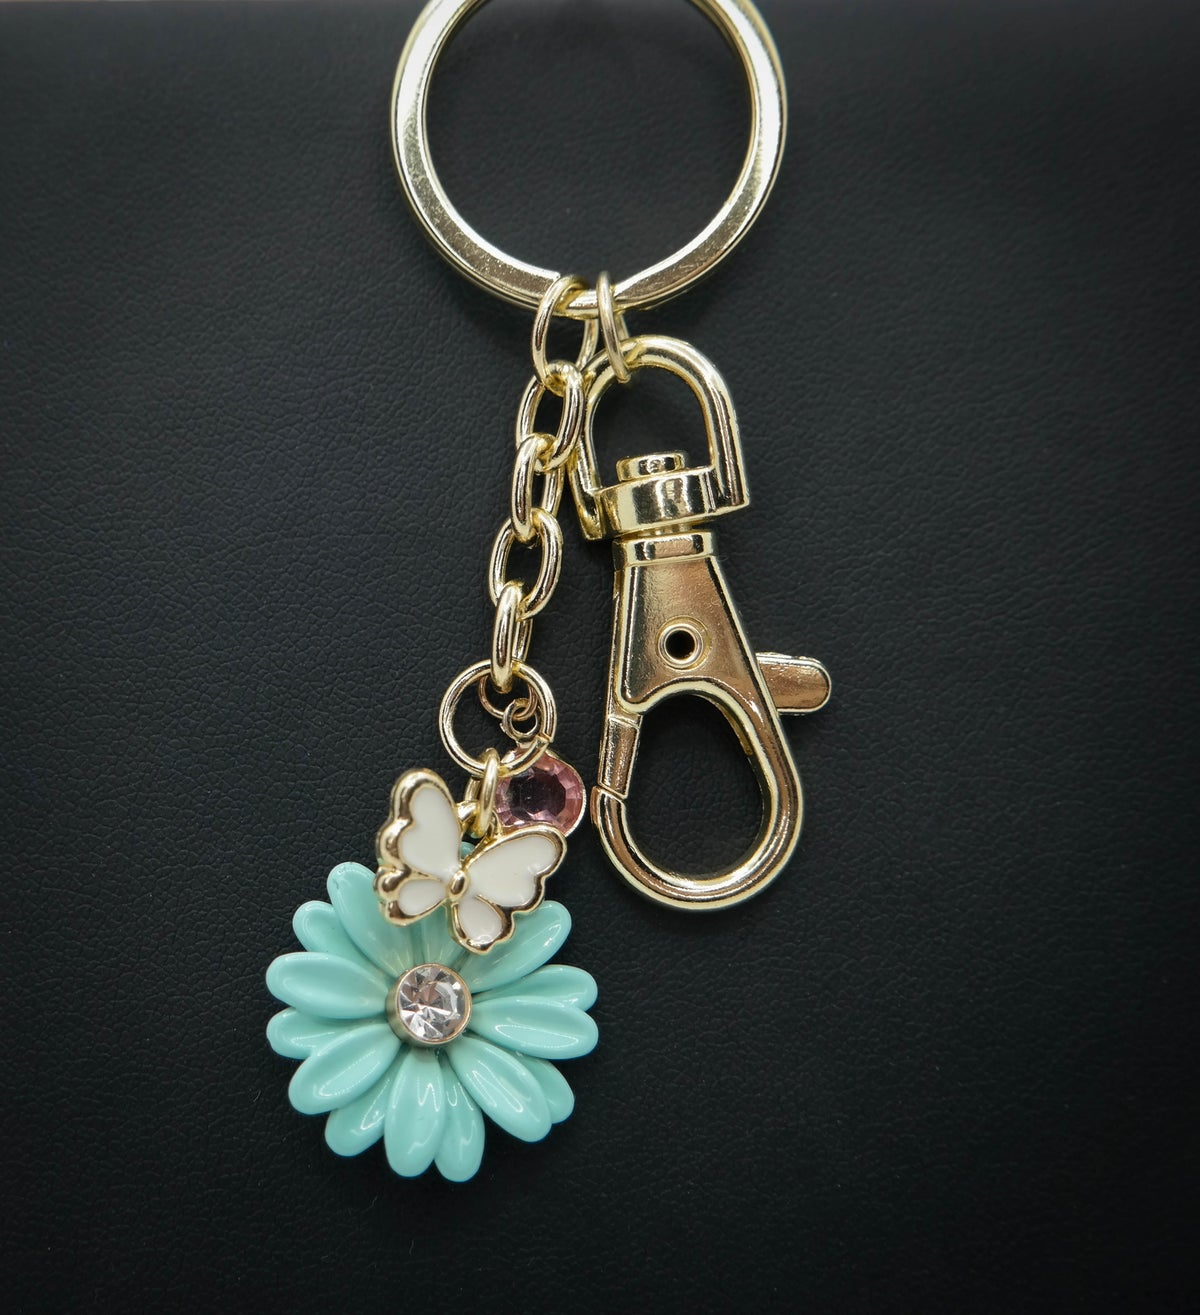 Limited Edition <br /> <br /> Keychain <br /> Butterfly